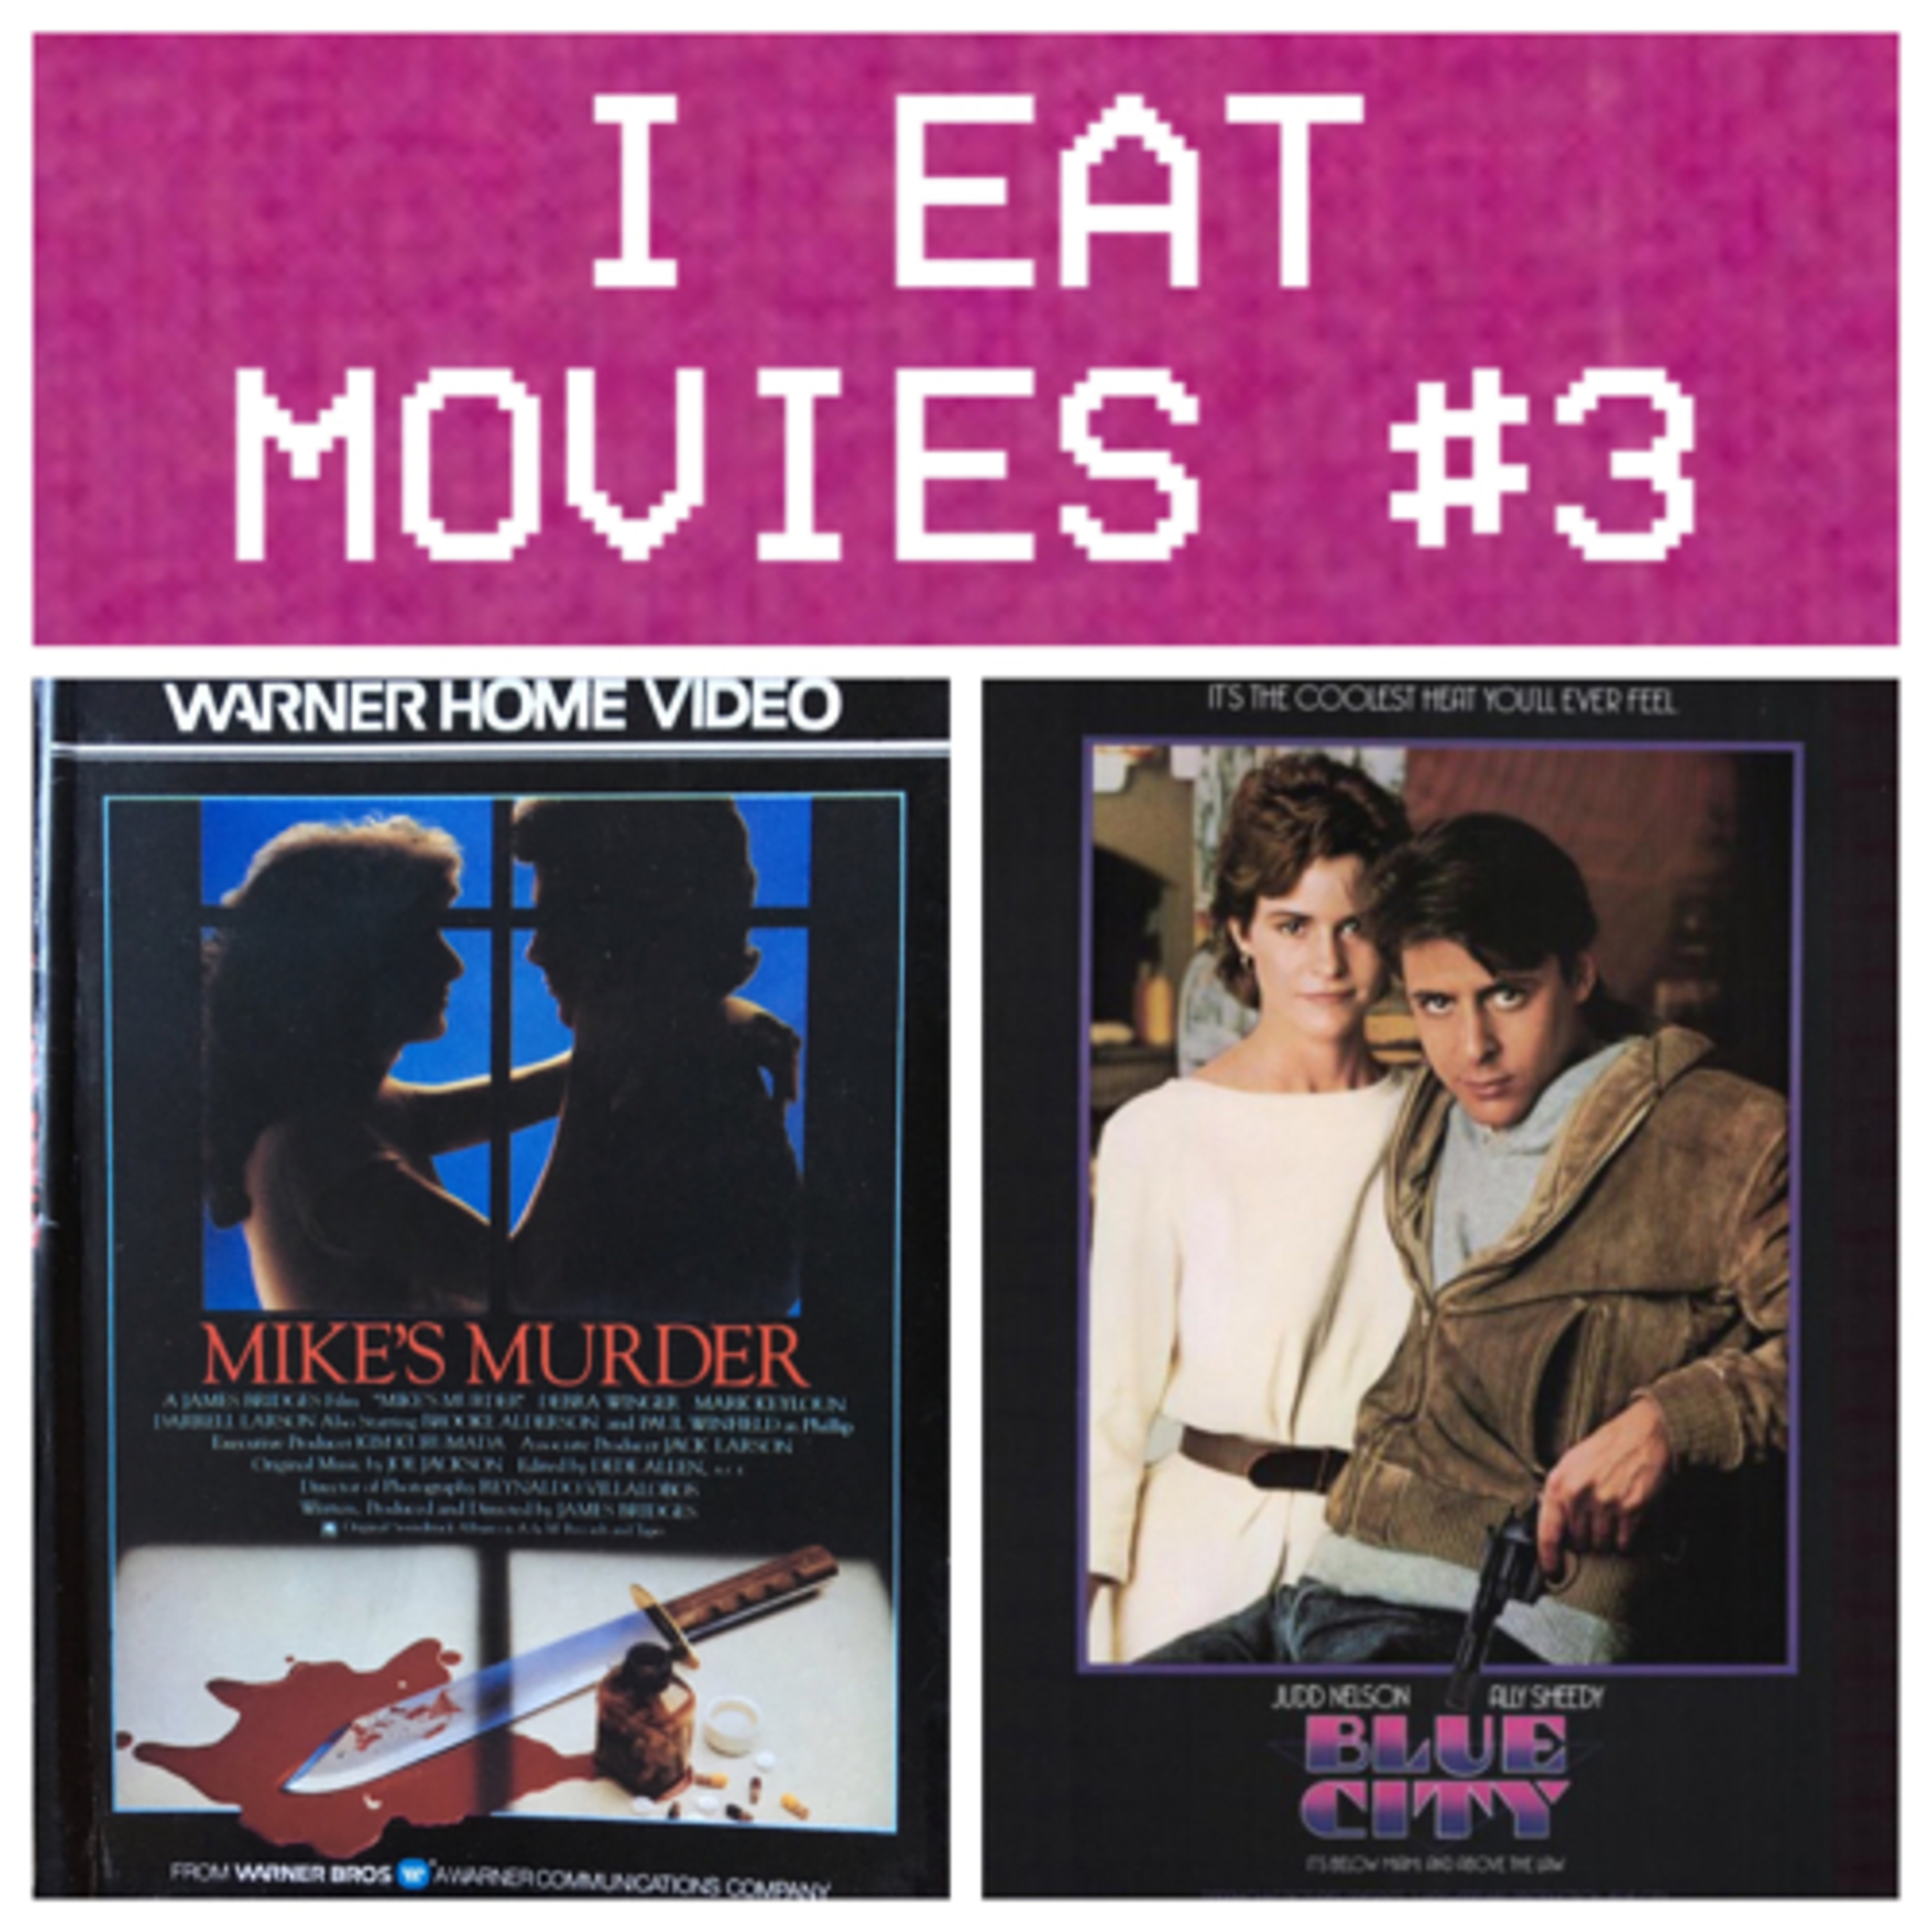 I Eat Movies #3: Overlooked Paul Winfield - Mike's Murder (1984) / Blue City (1986)